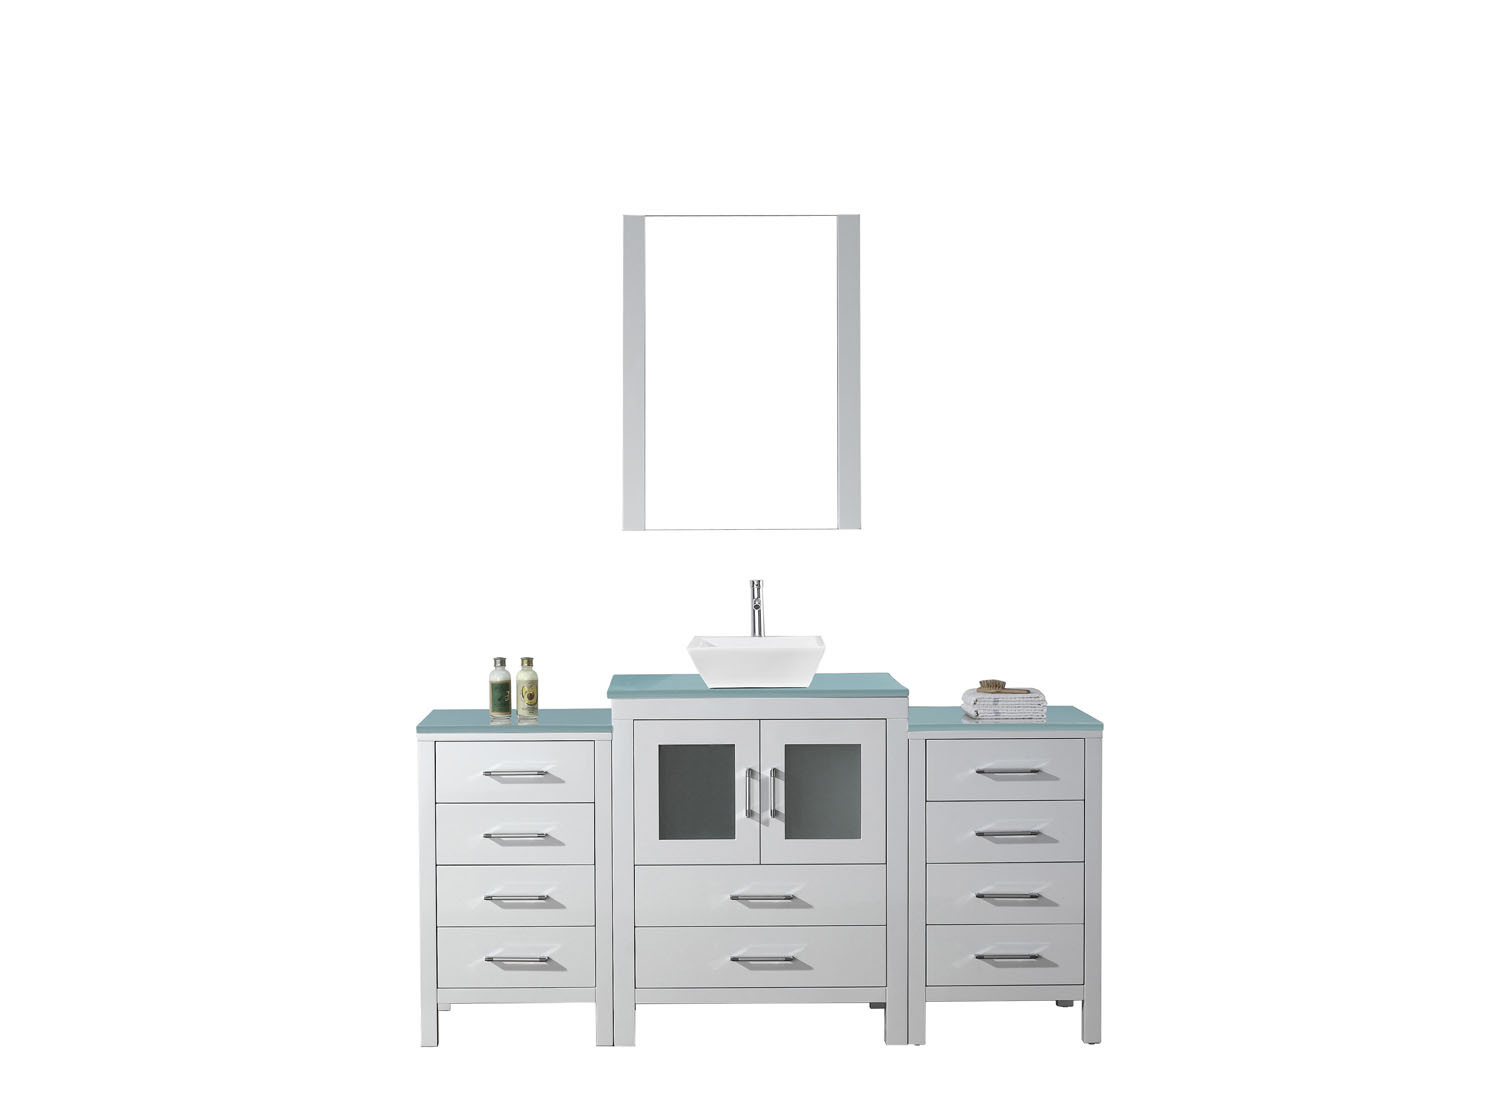 Virtu KS-70064-G-WH-001 Dior 64 Inch Single Bathroom Vanity Set In White